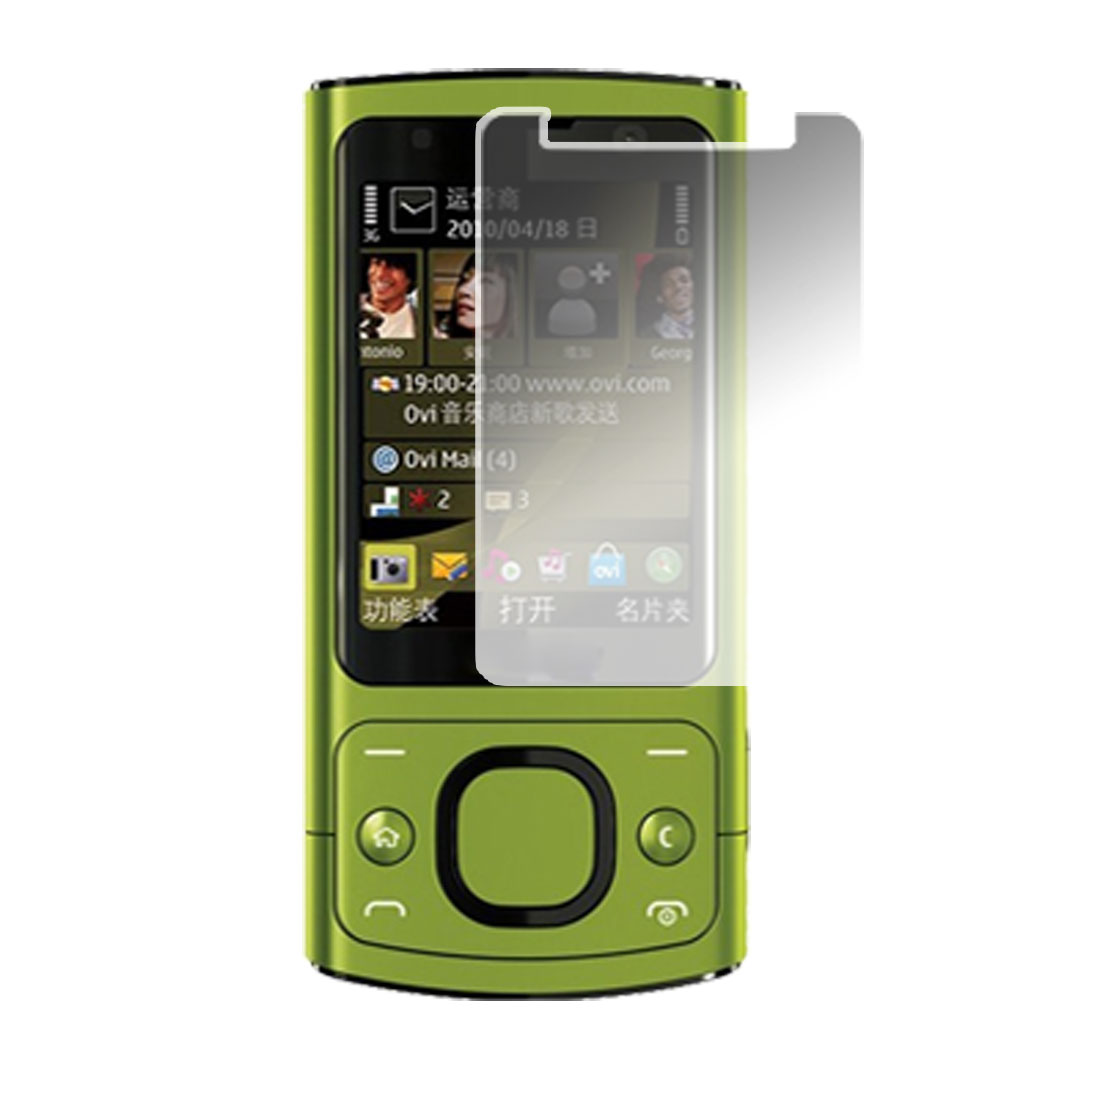 LCD Screen Shield Clear Plastic Film for Nokia 6700S